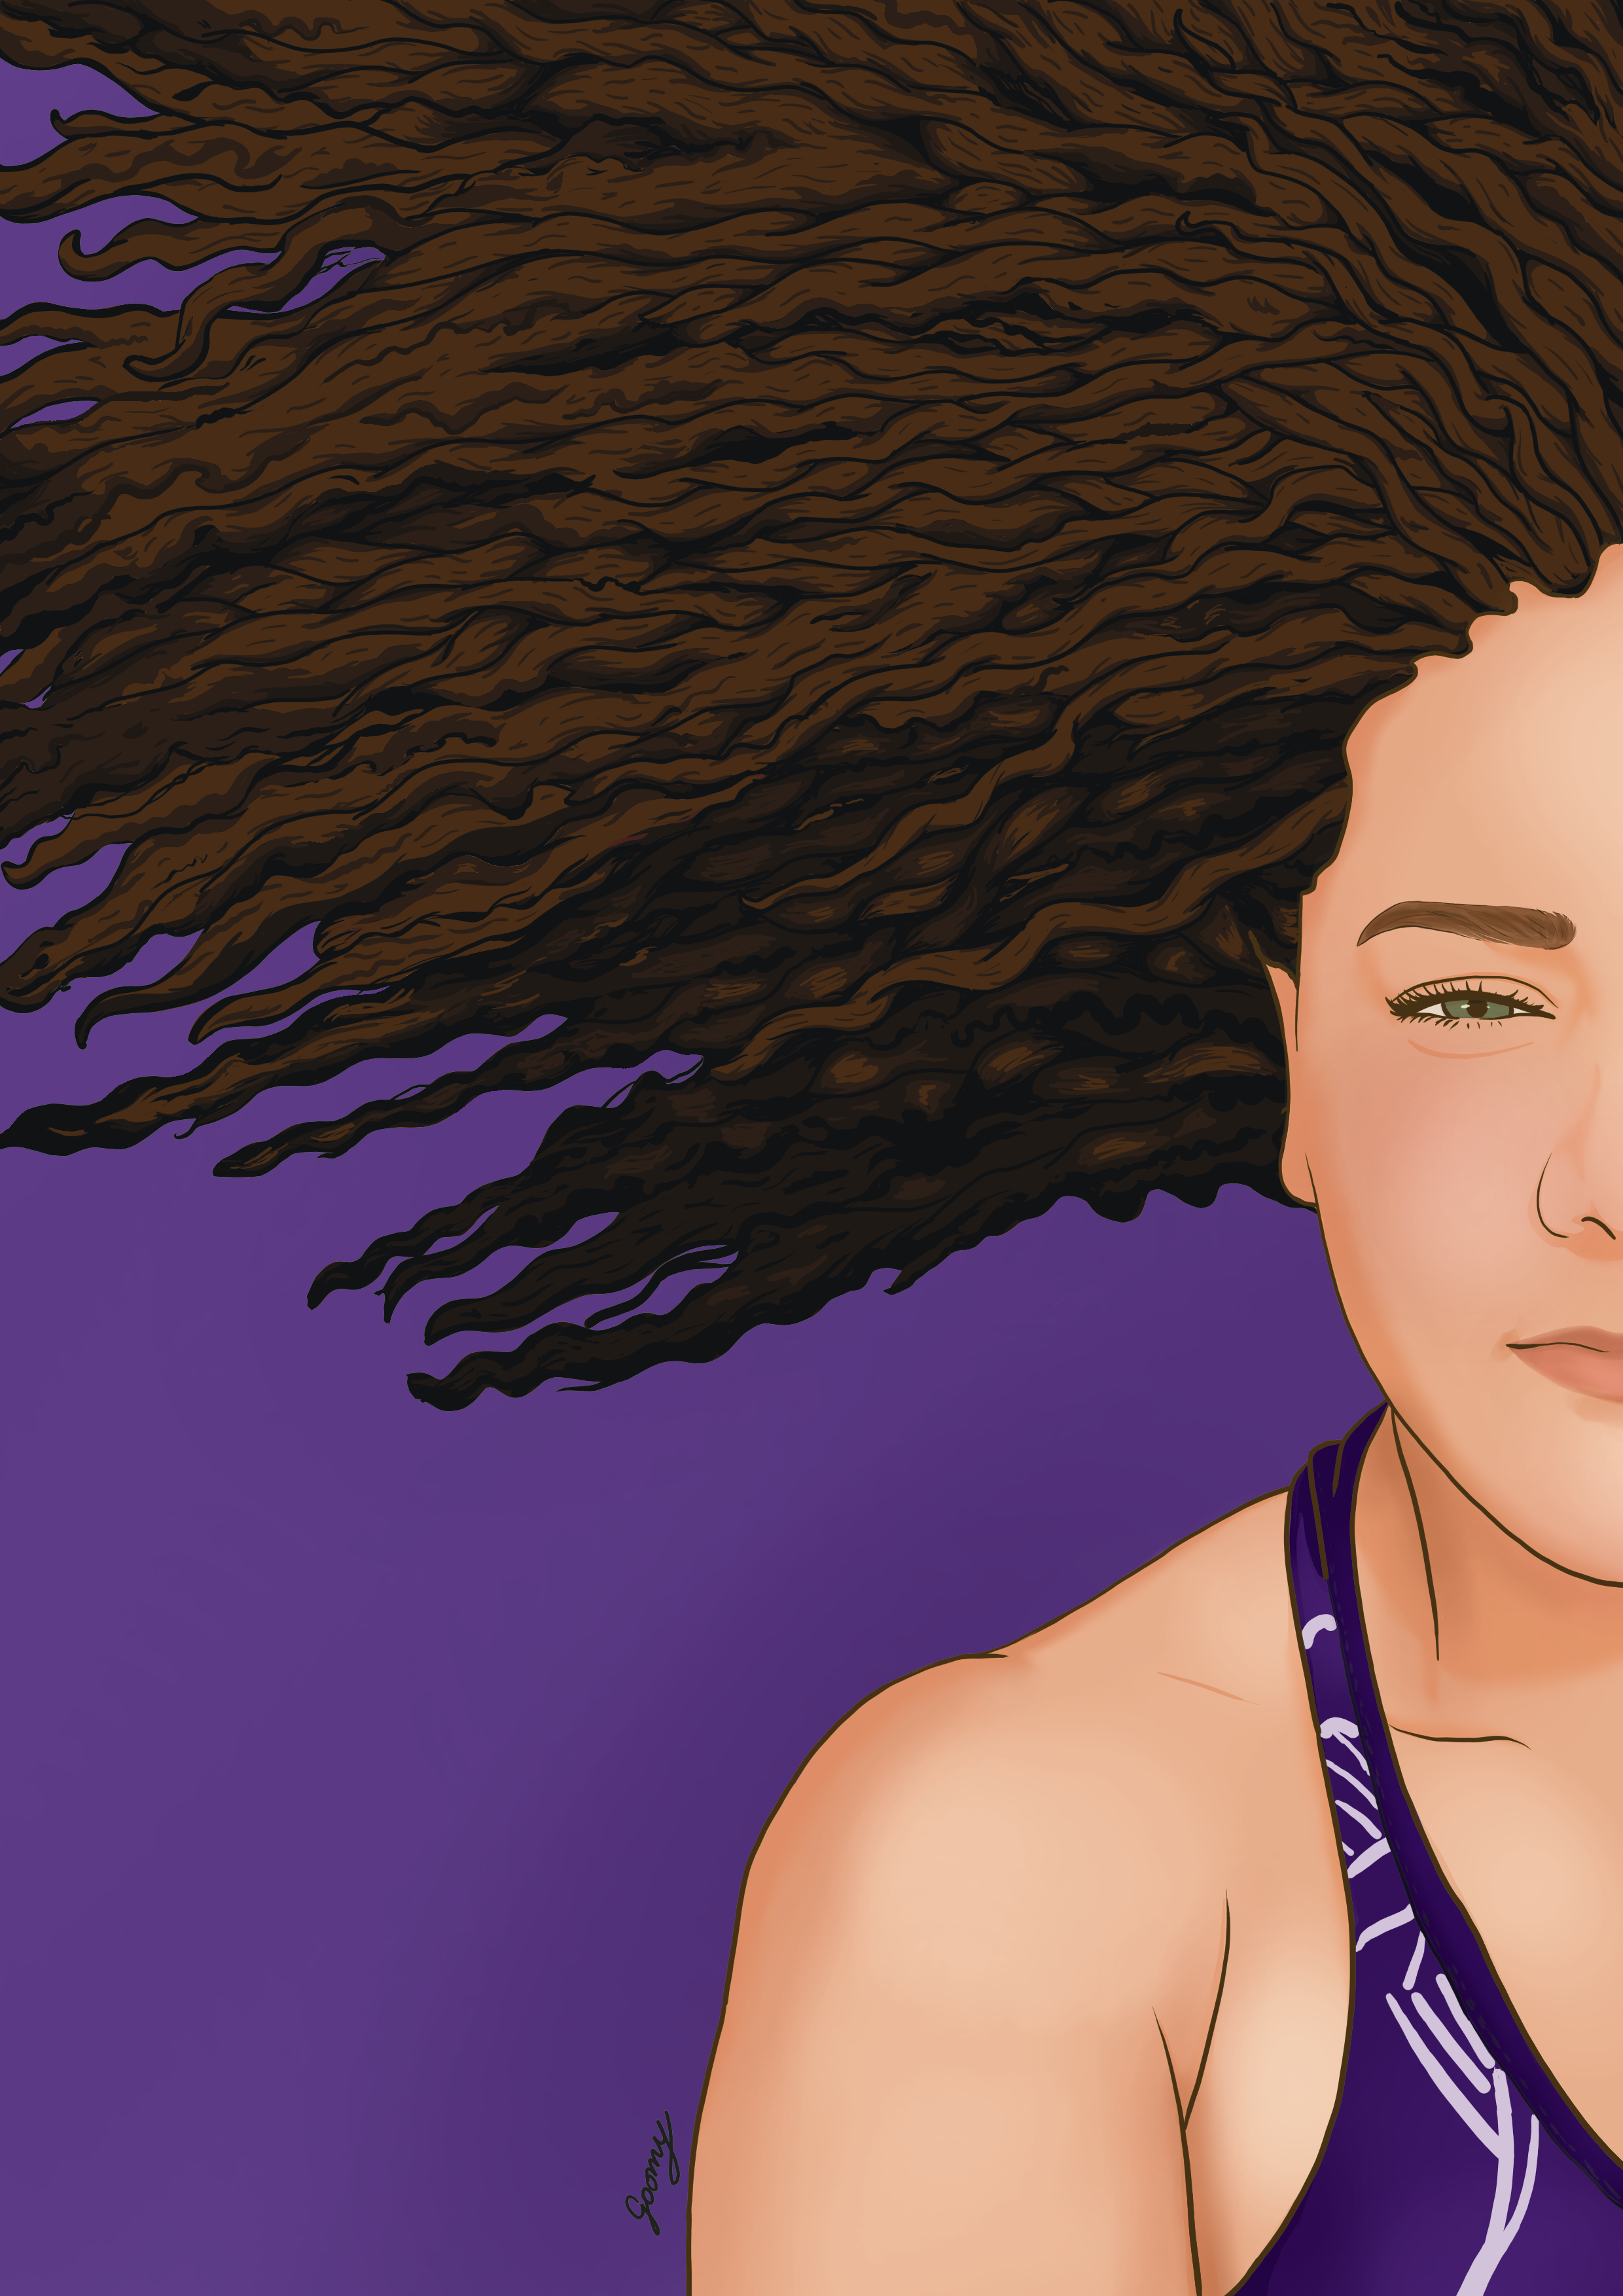 digital drawing of a woman laying on the ground with her curly hair spread out